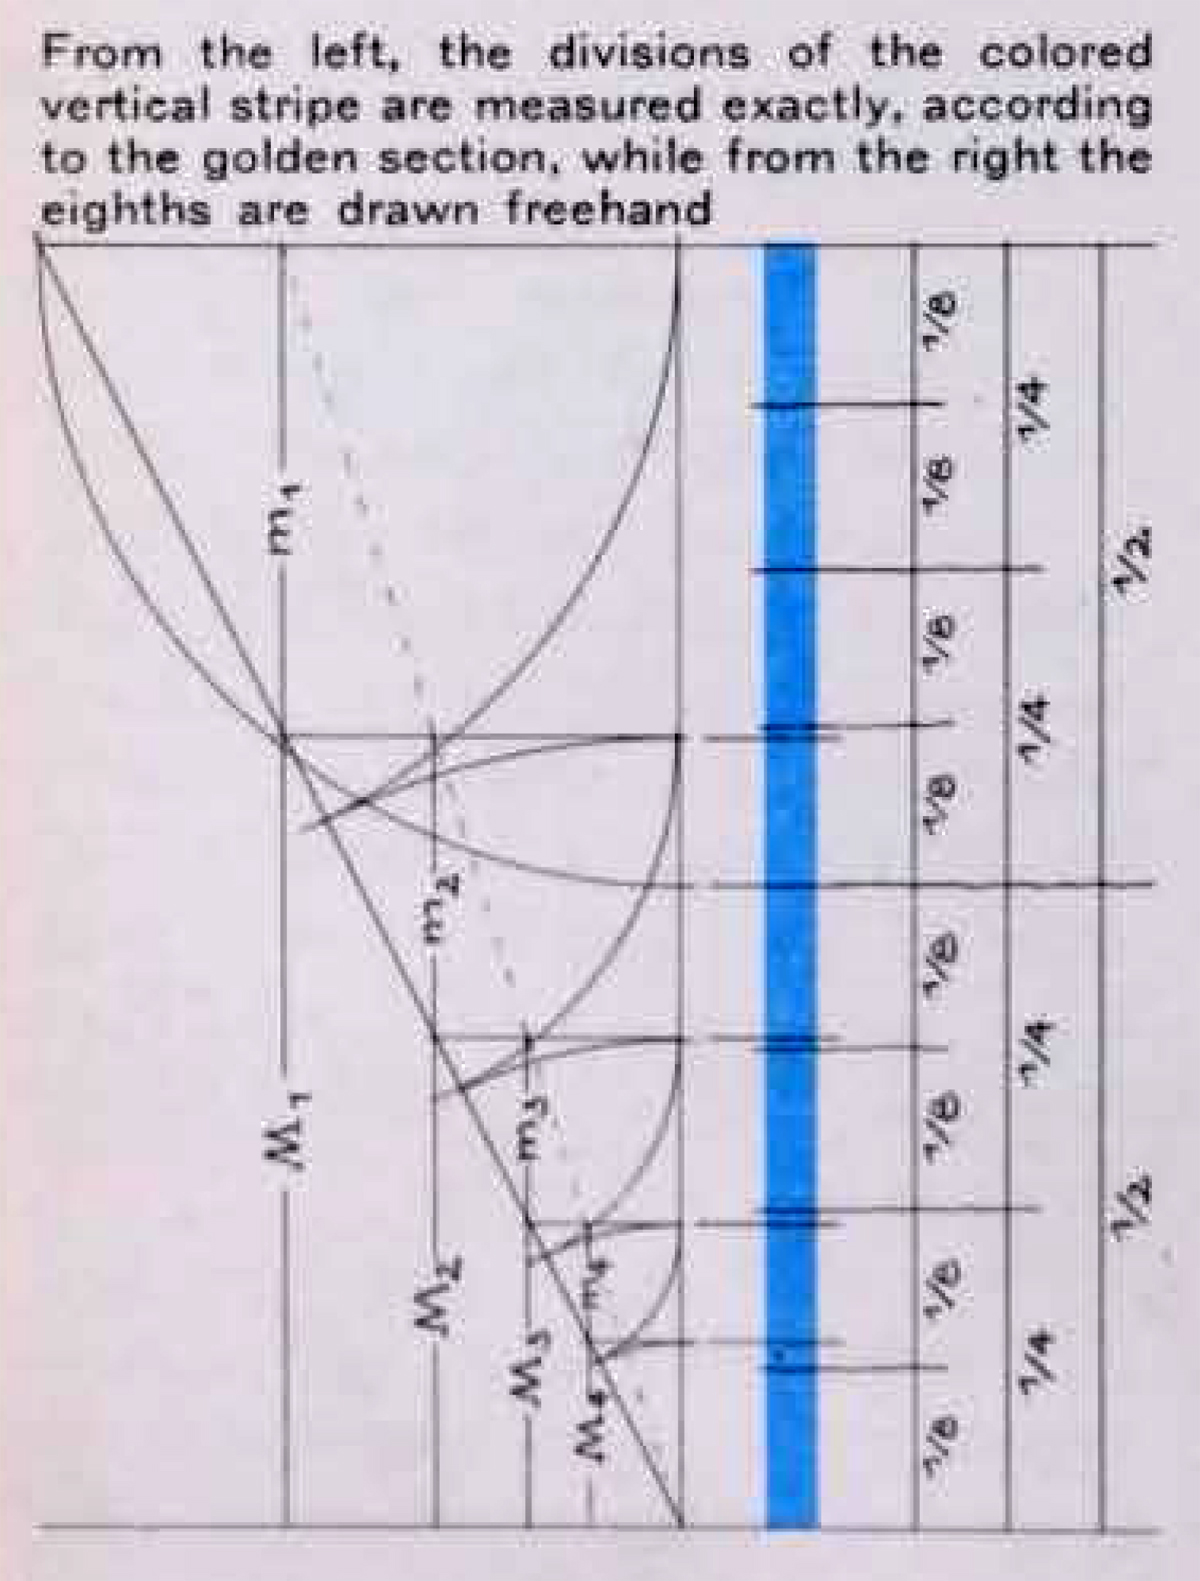 This theory ought to be understood; though, since calculations and geometric figures or out of place in a freehand drawing